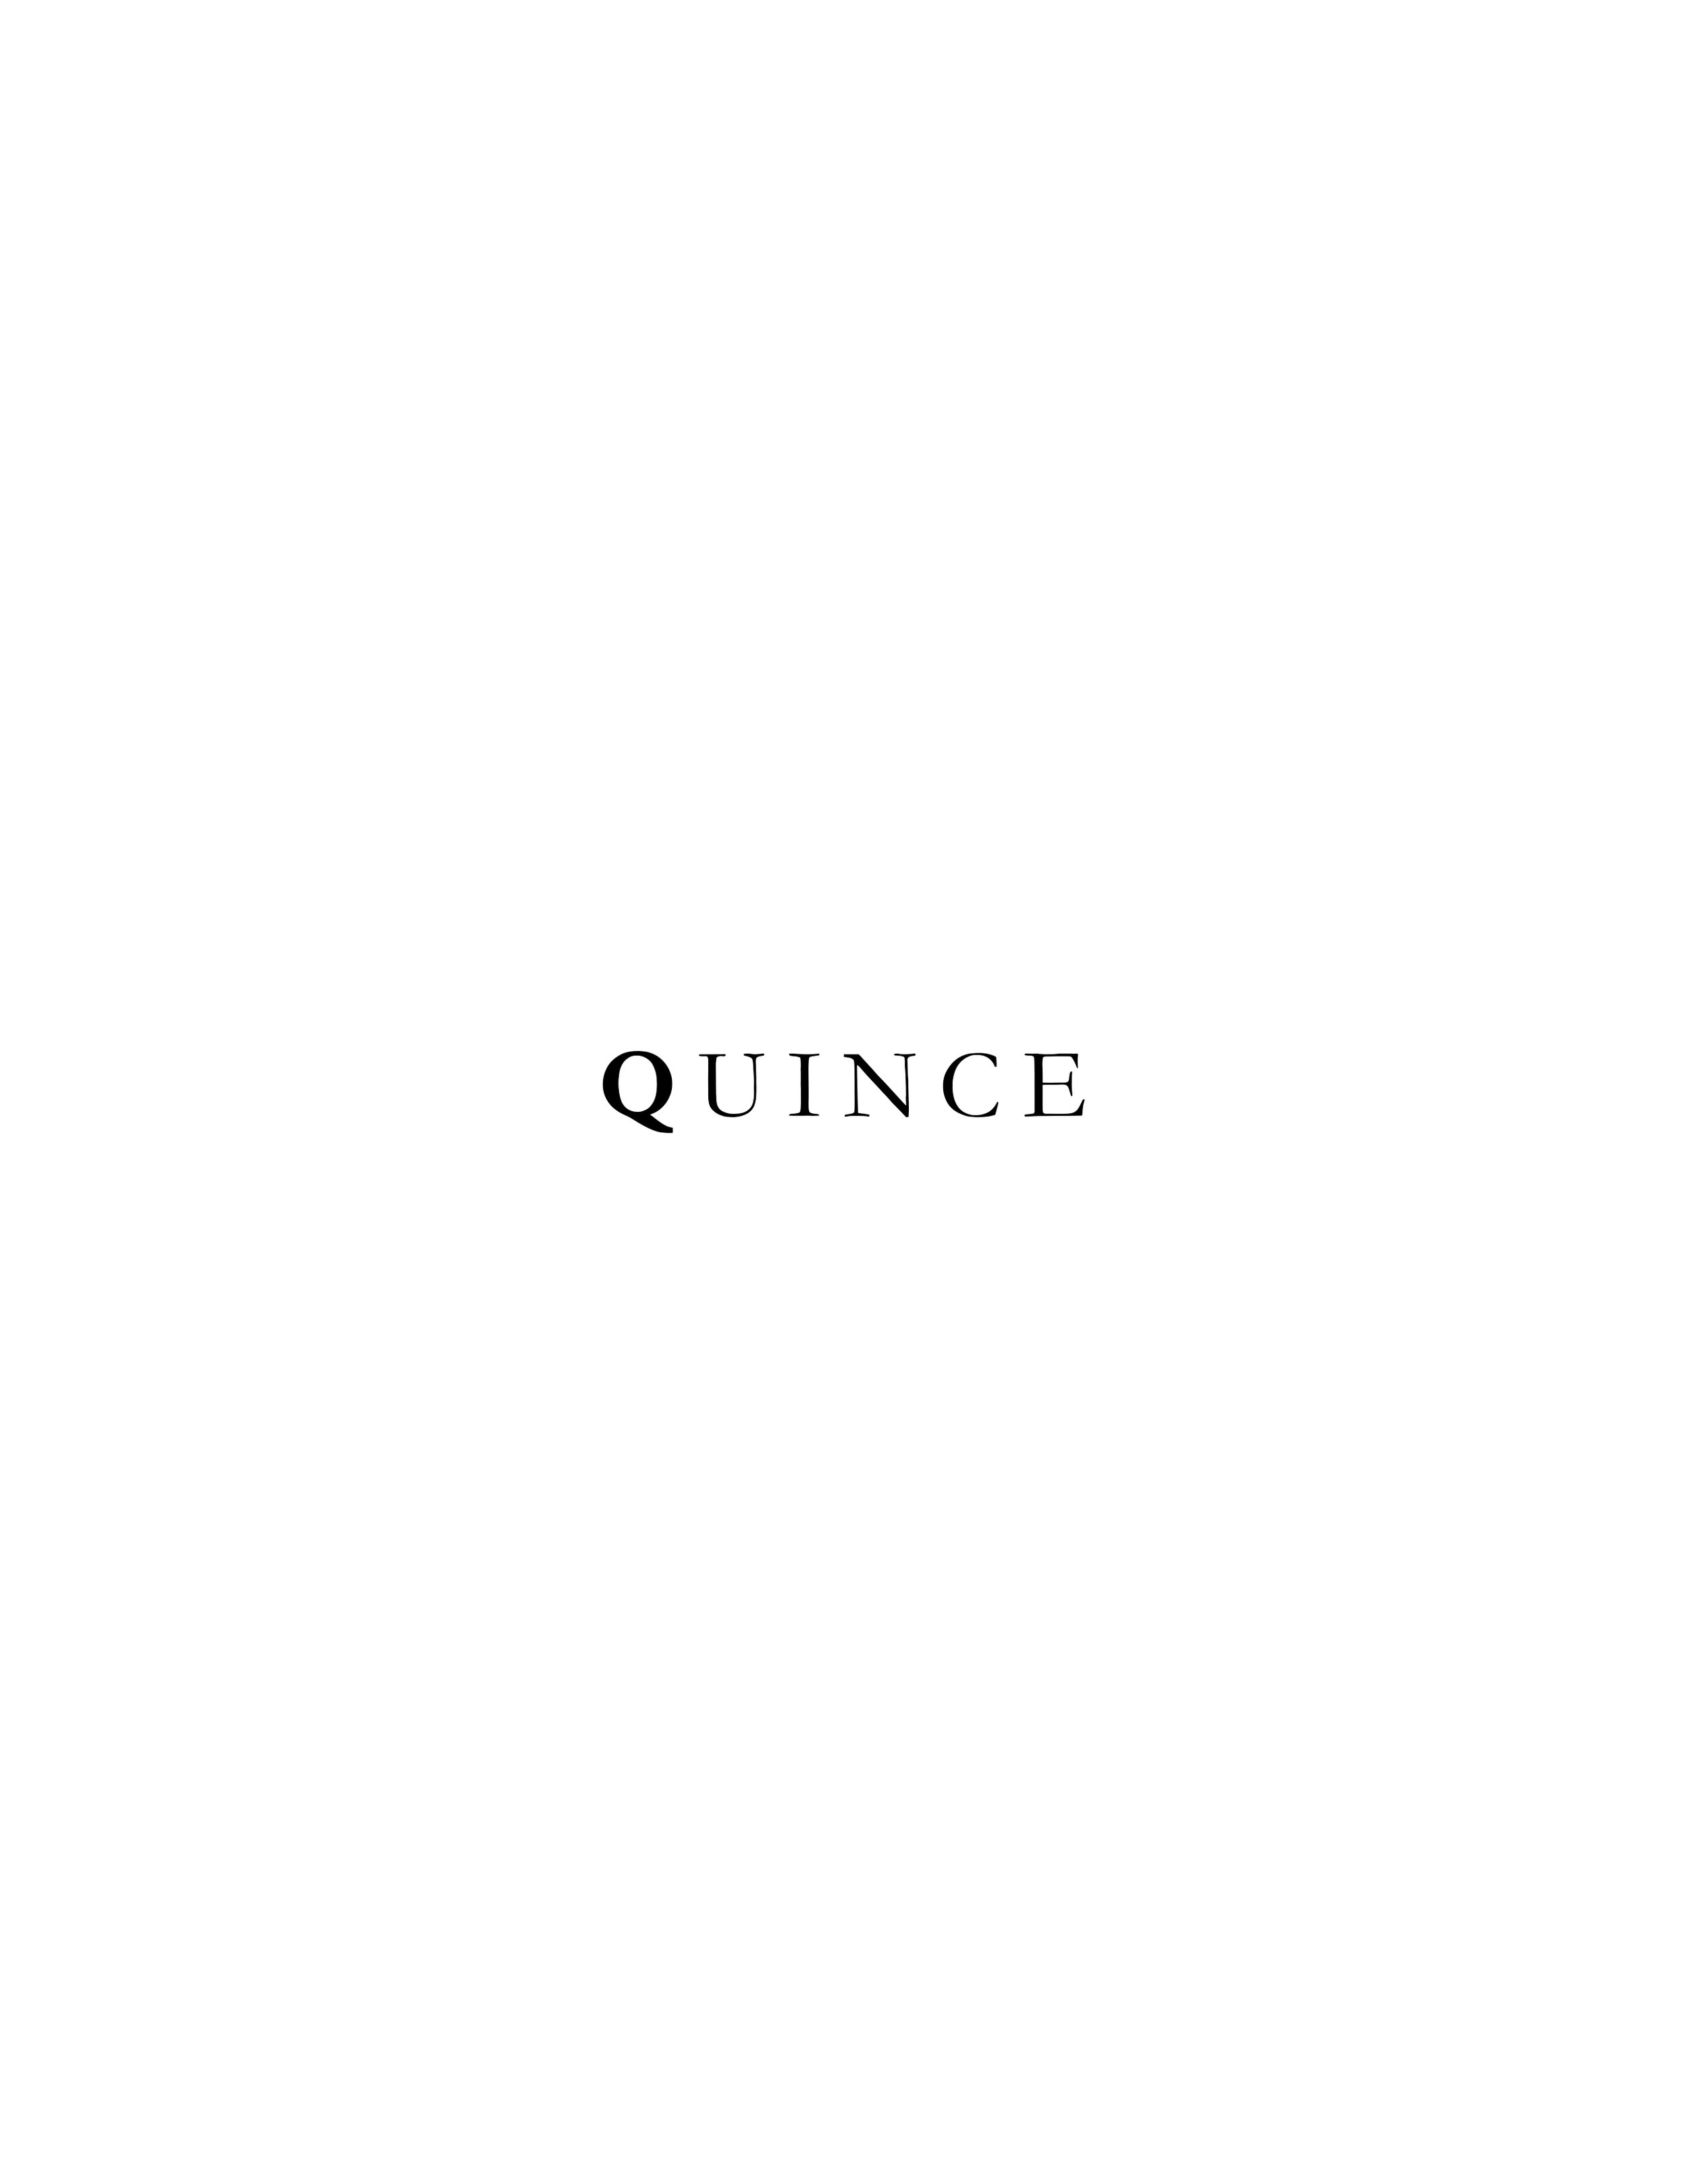 Quince TEXT.jpg